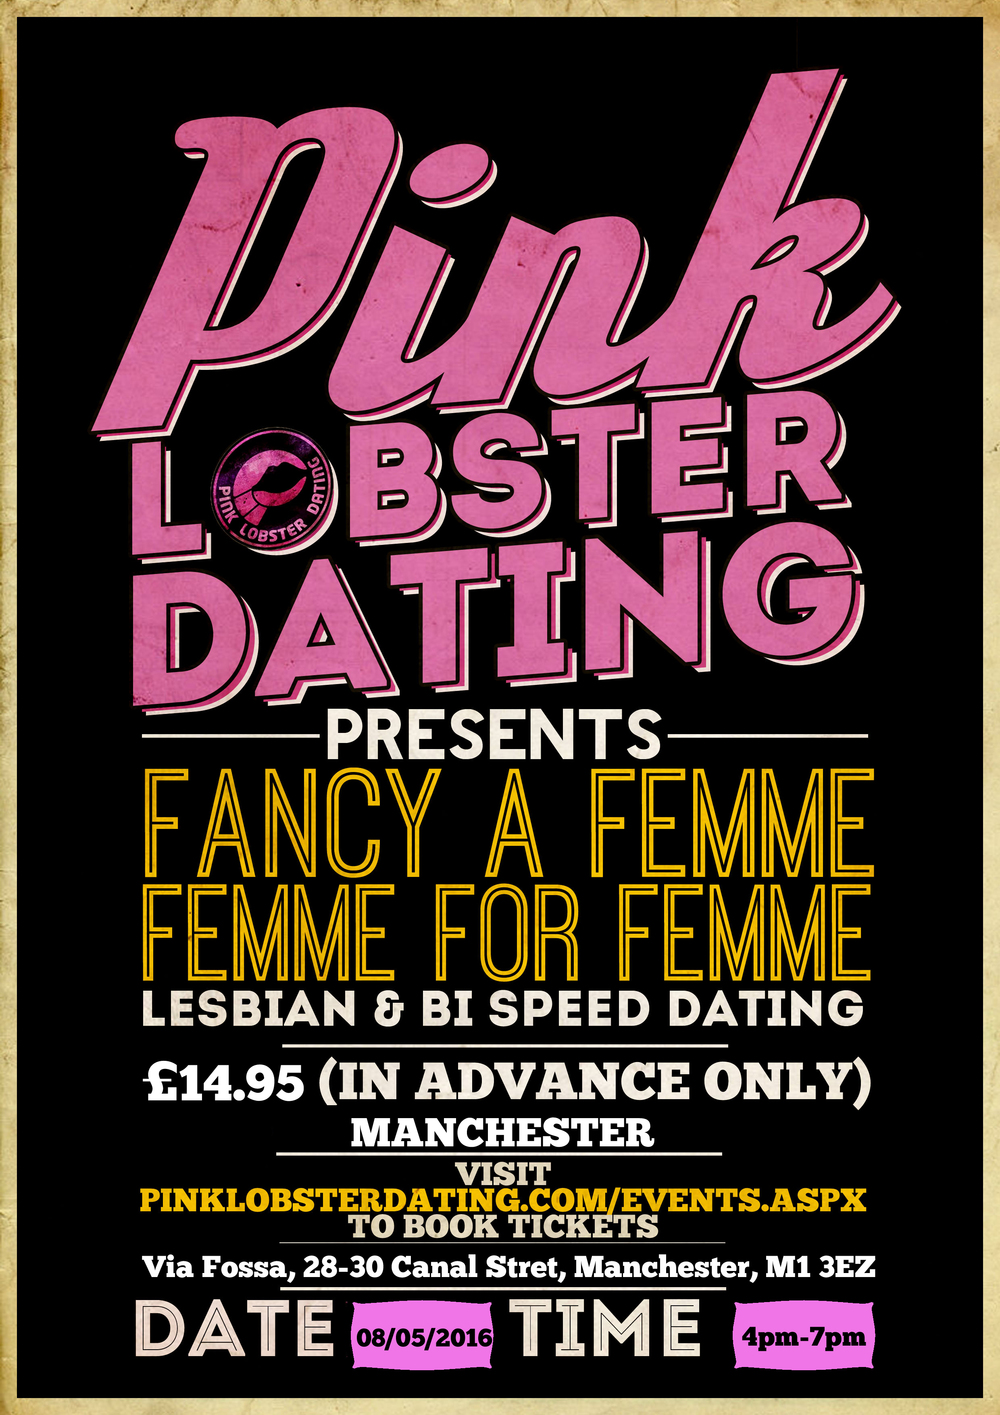 Manchester fancy a femme lesbian speed dating